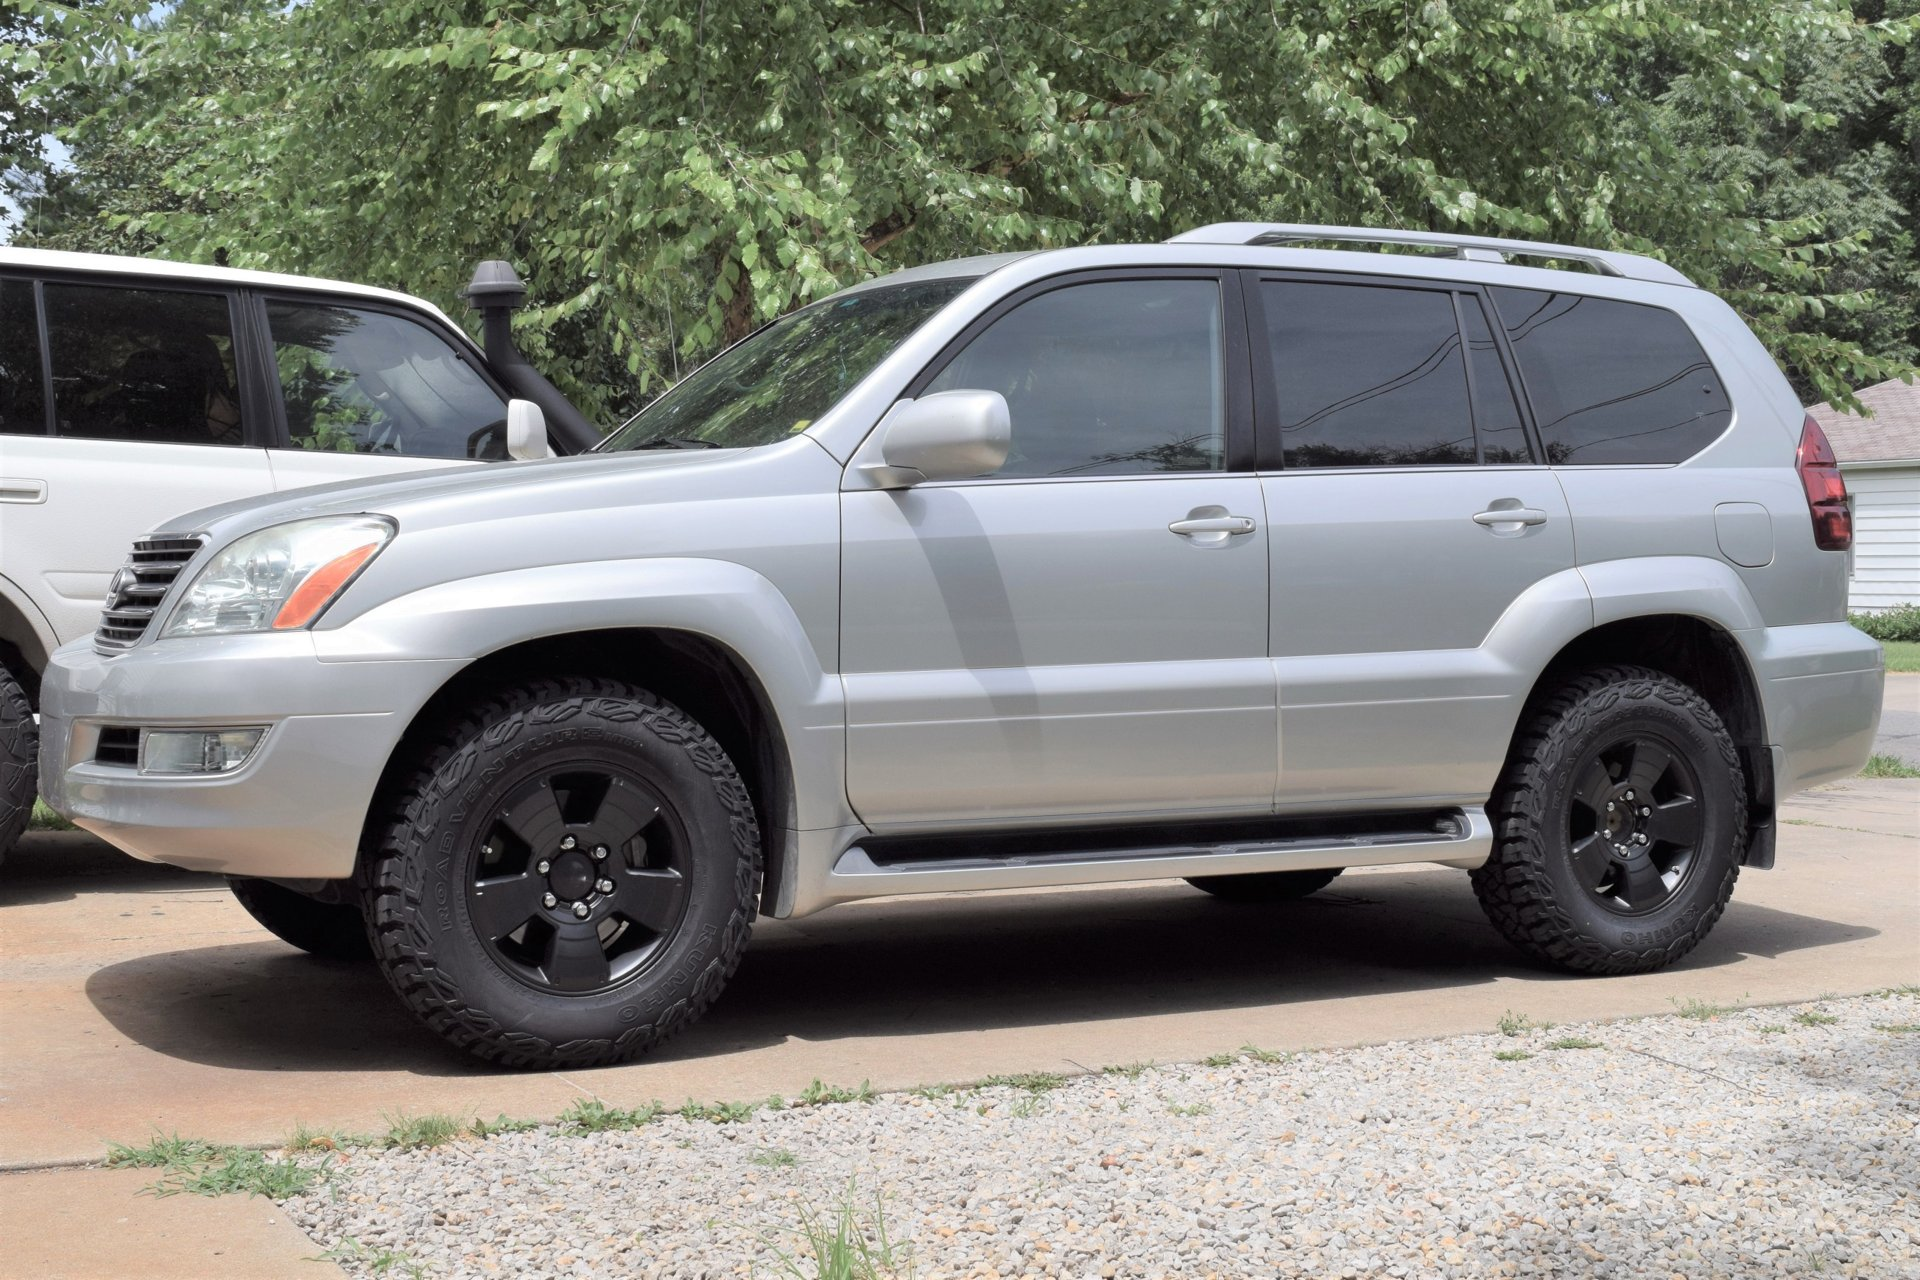 GX470 Wheel/Tire/Lift Picture Combination Thread | IH8MUD Forum